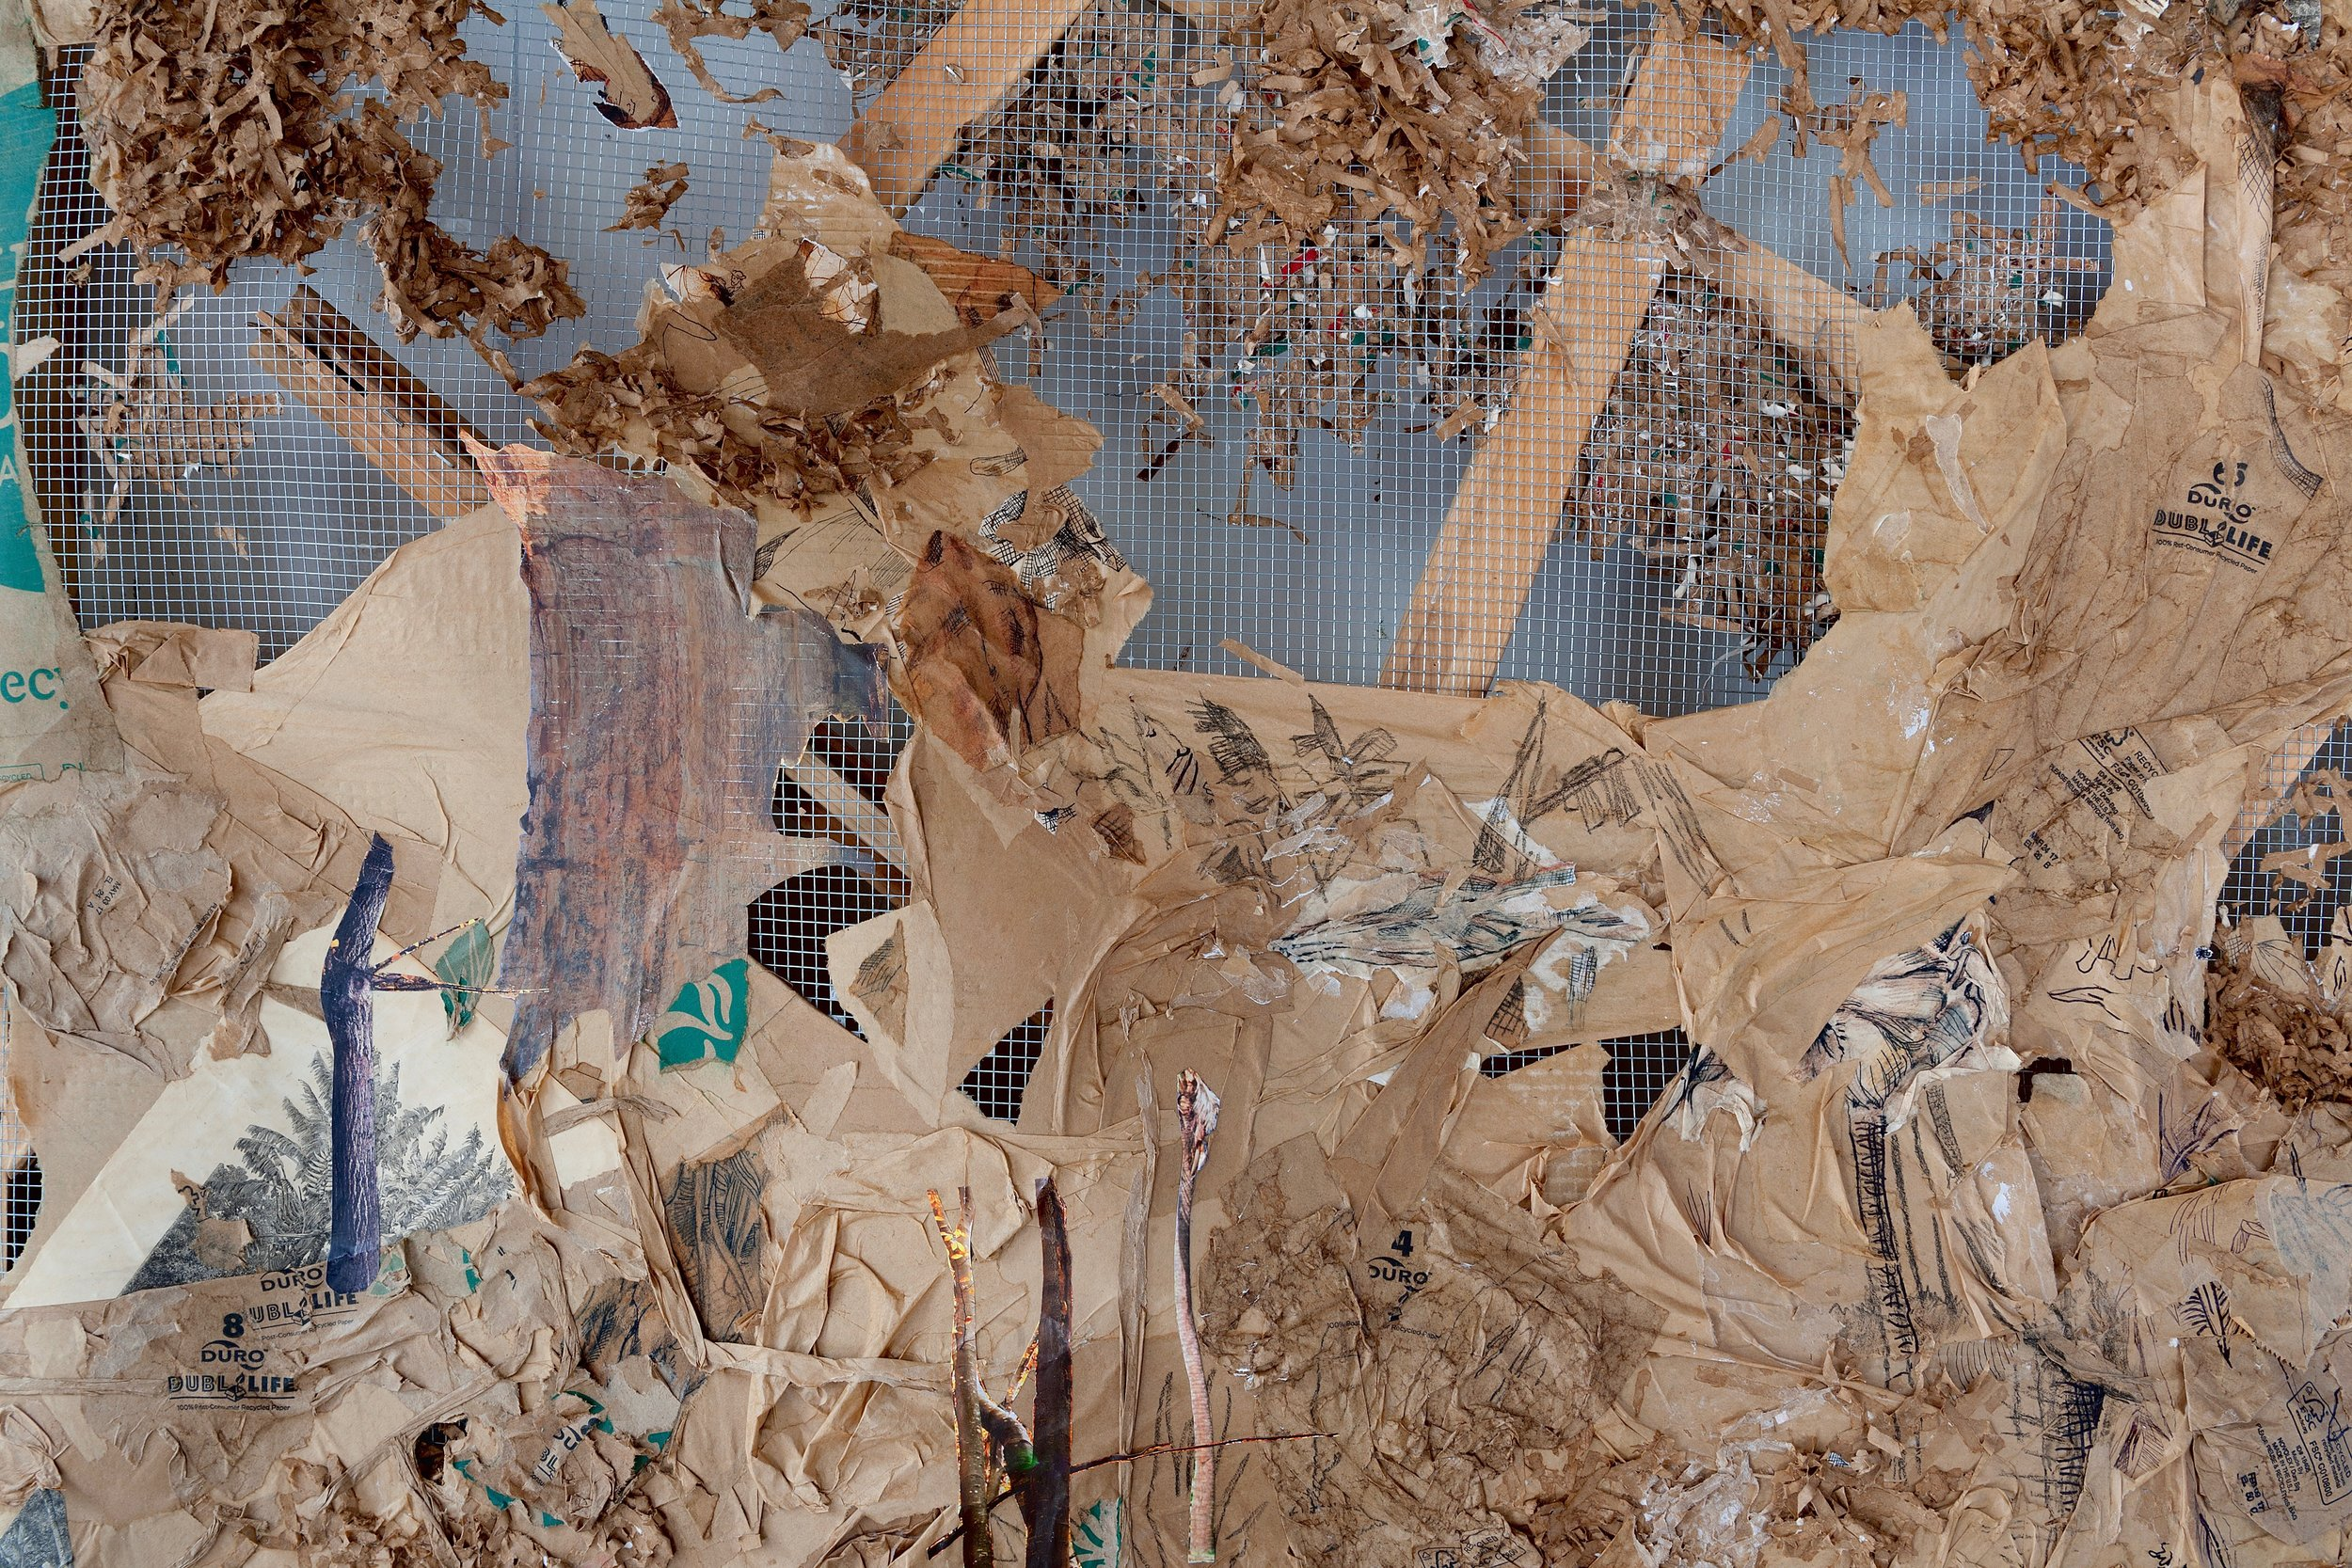 DURO DUBL LIFE  (detail),2017, Duro Dubl Life brand paper bags, artist's old life drawings, 19th century engraving, nature calendars, and pen on chicken wire and wooden painting stretchers, 48 x 48 inches